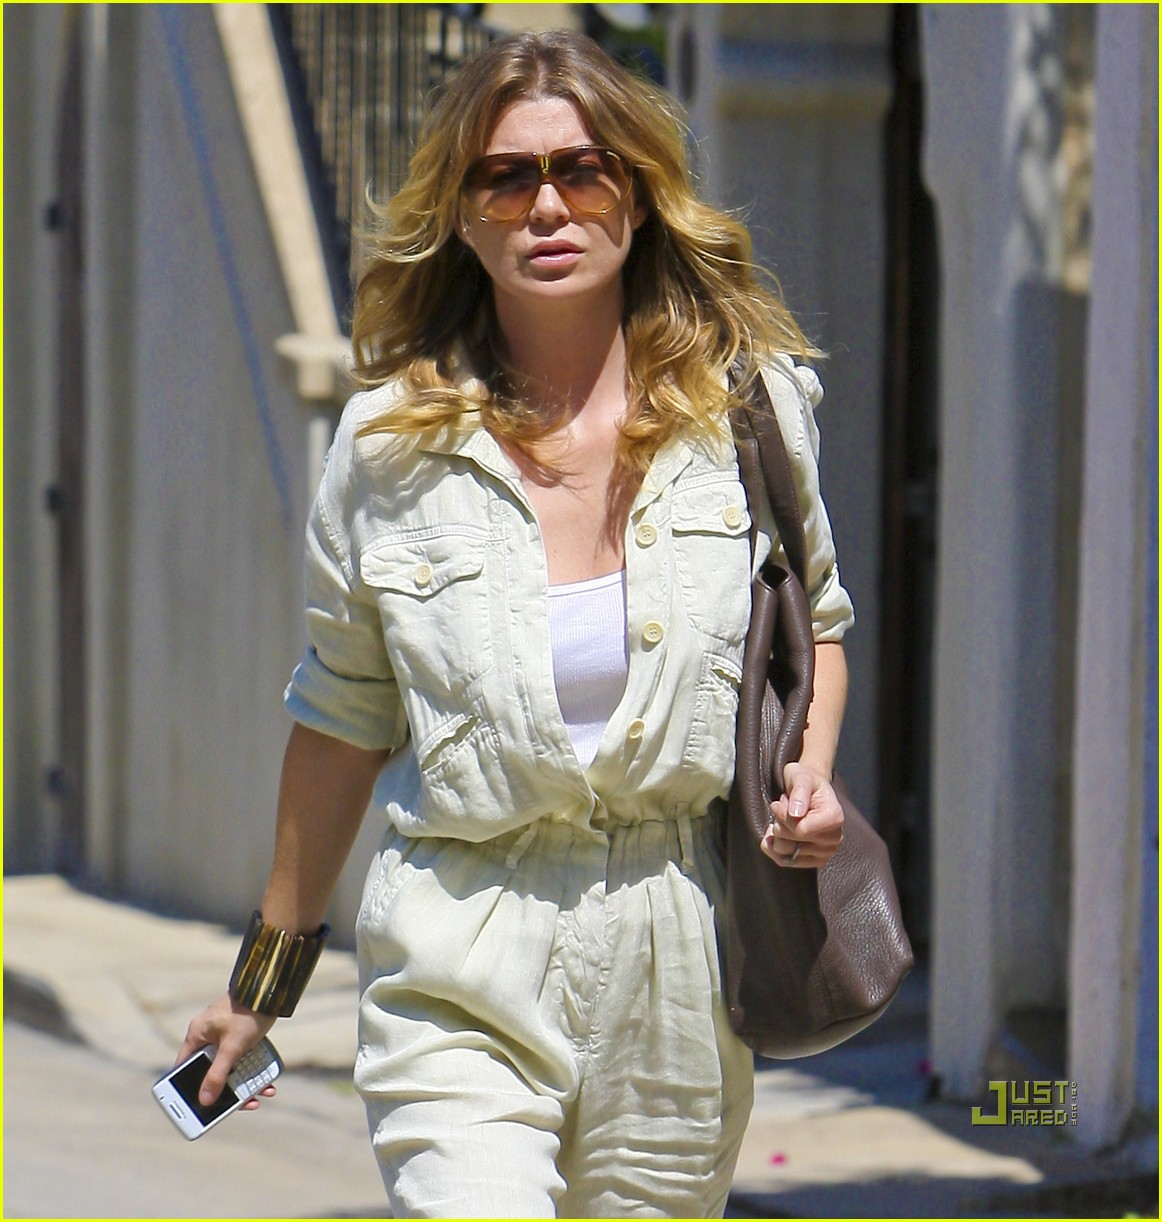 ellen pompeo jumpsuit out la 01